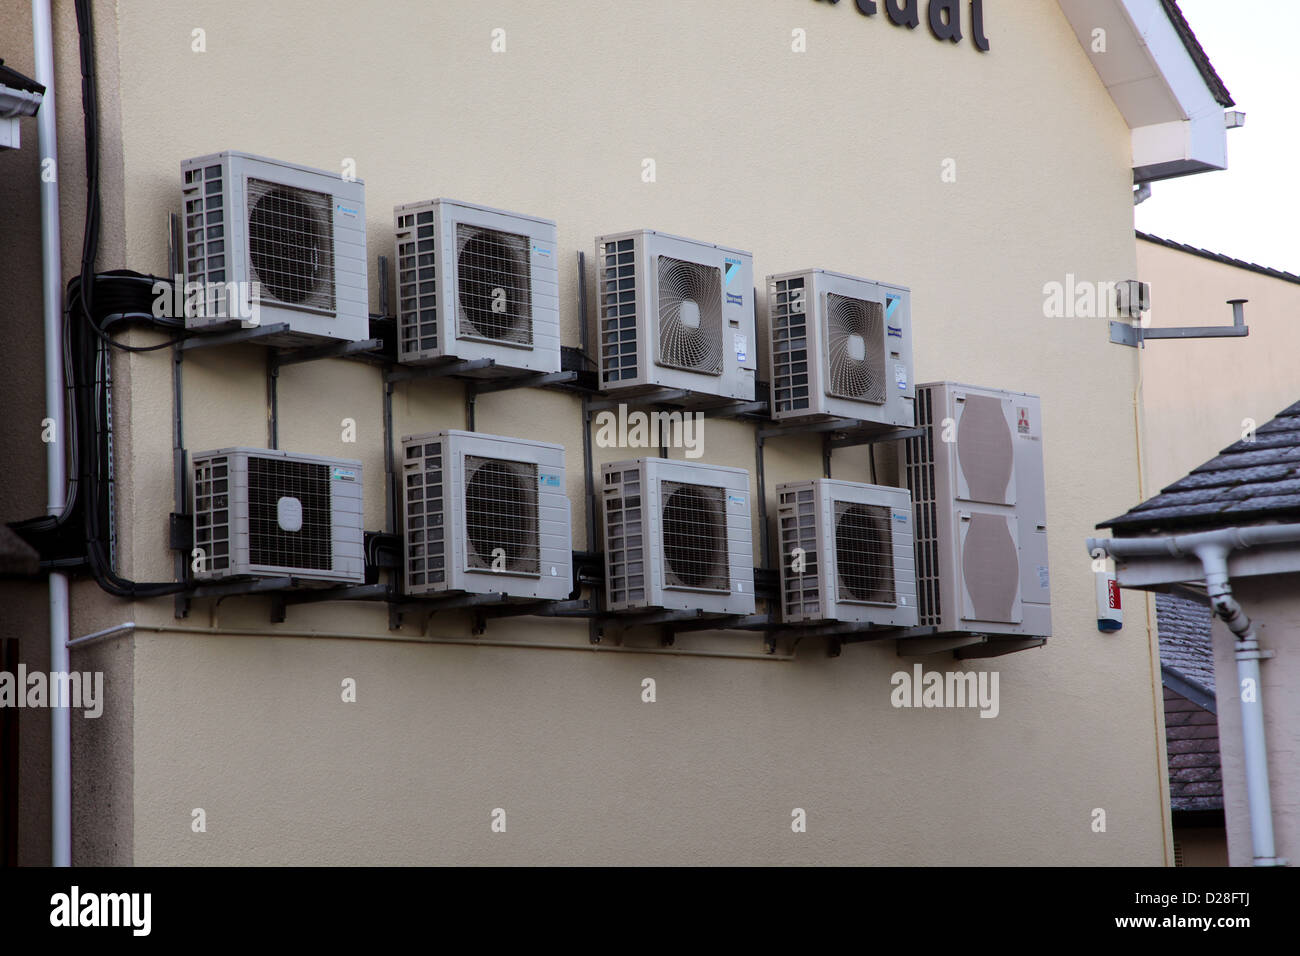 #51607A Battery Of Air Conditioning Units On The Outside Wall Of A  2017 14122 Small Wall Air Conditioning Units photo with 1300x956 px on helpvideos.info - Air Conditioners, Air Coolers and more